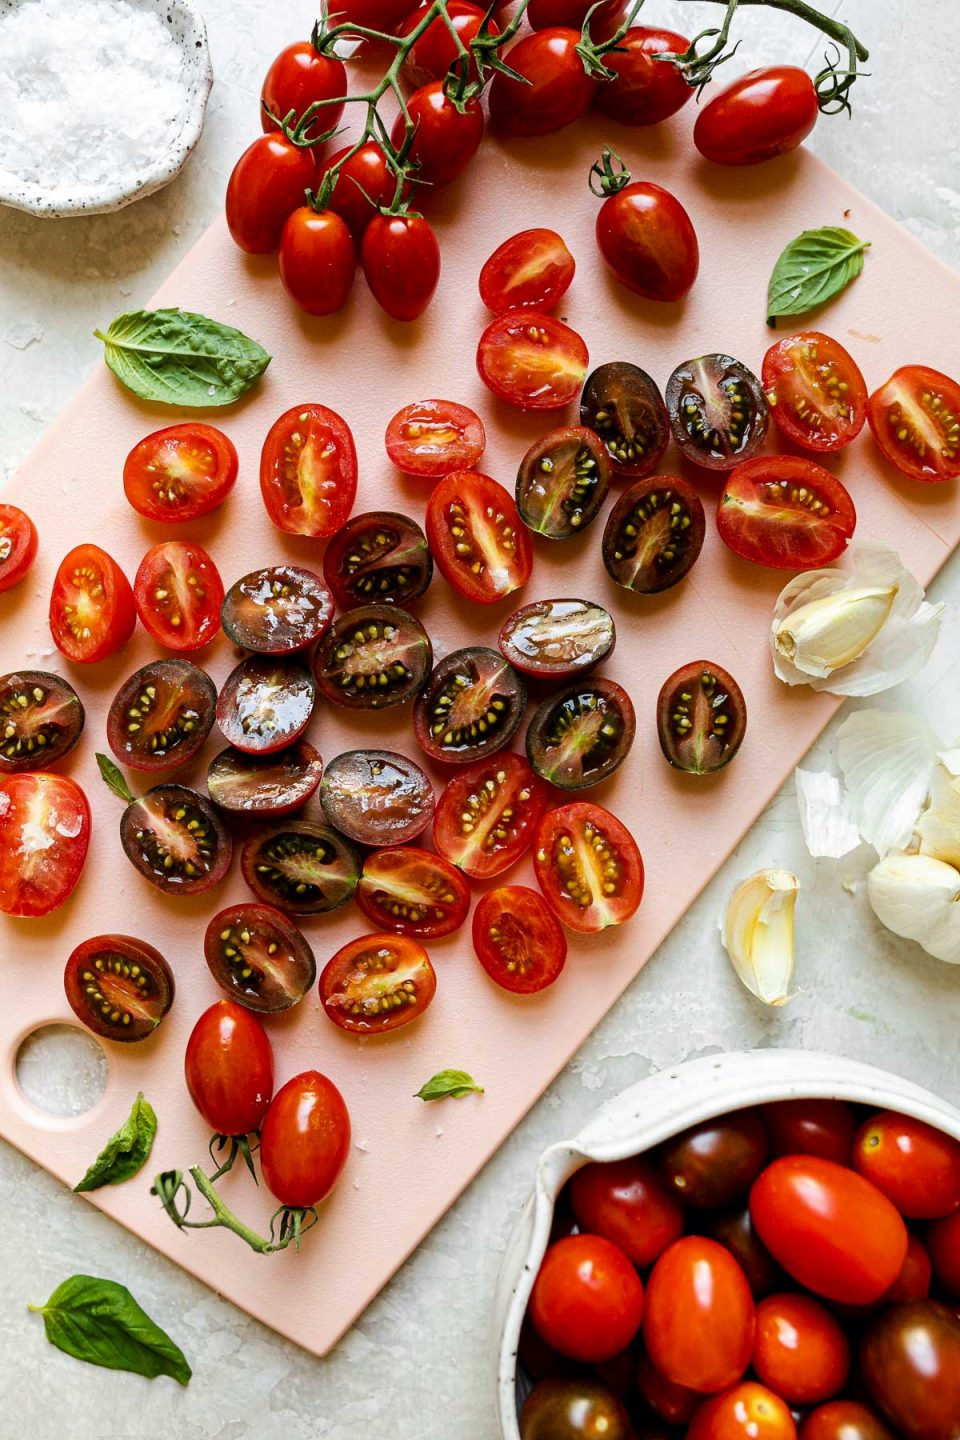 Top down view of halved cherry tomatoes arranged on a light pink cutting board. The cutting board sits atop a textured white surface surrounded by cherry tomatoes on the vine, a small bowl of whole cherry tomatoes, a few loose cherry tomatoes, a bulb of garlic with a few loose cloves, loose leaves of fresh basil, & a small pinch bowl filled with kosher salt.